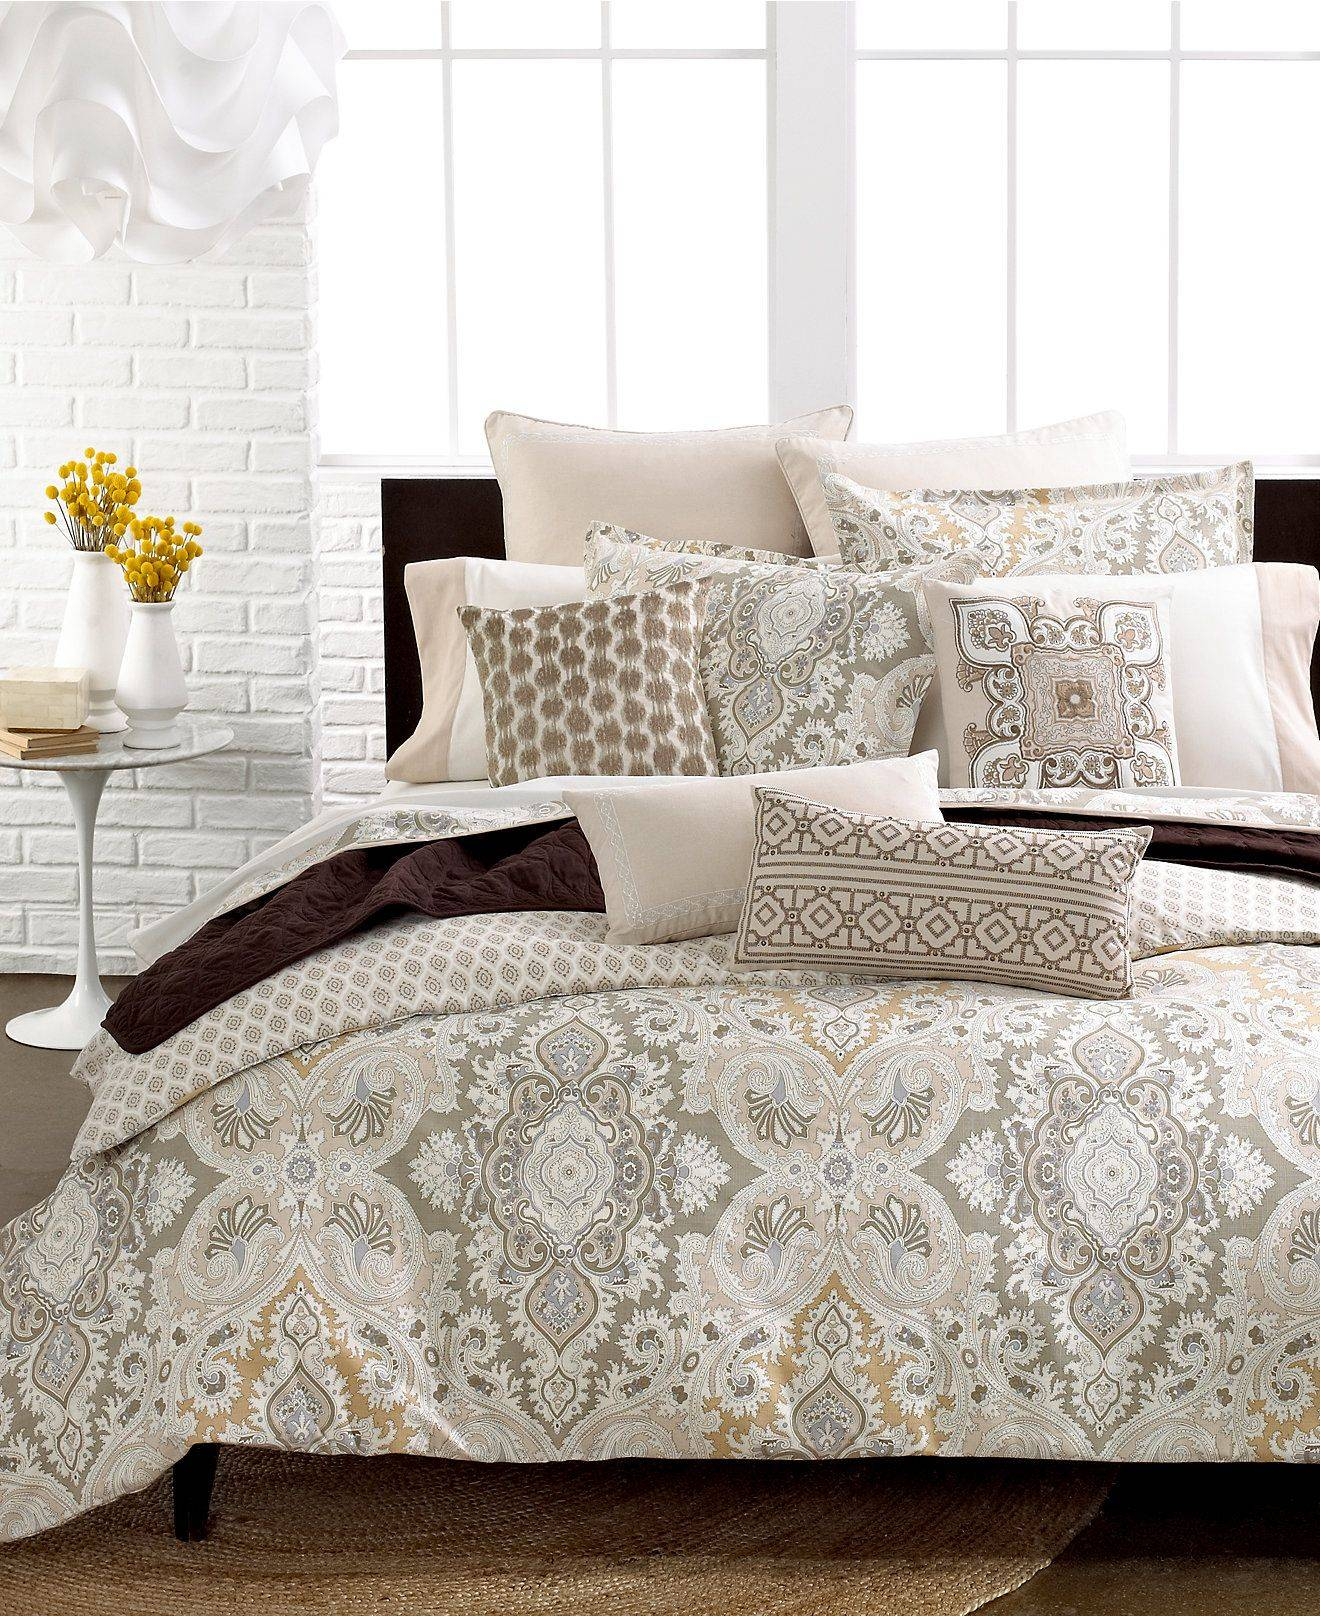 Bed Comforter Sets Inspirational Echo Odyssey King forter Set Bedding Collections Bed